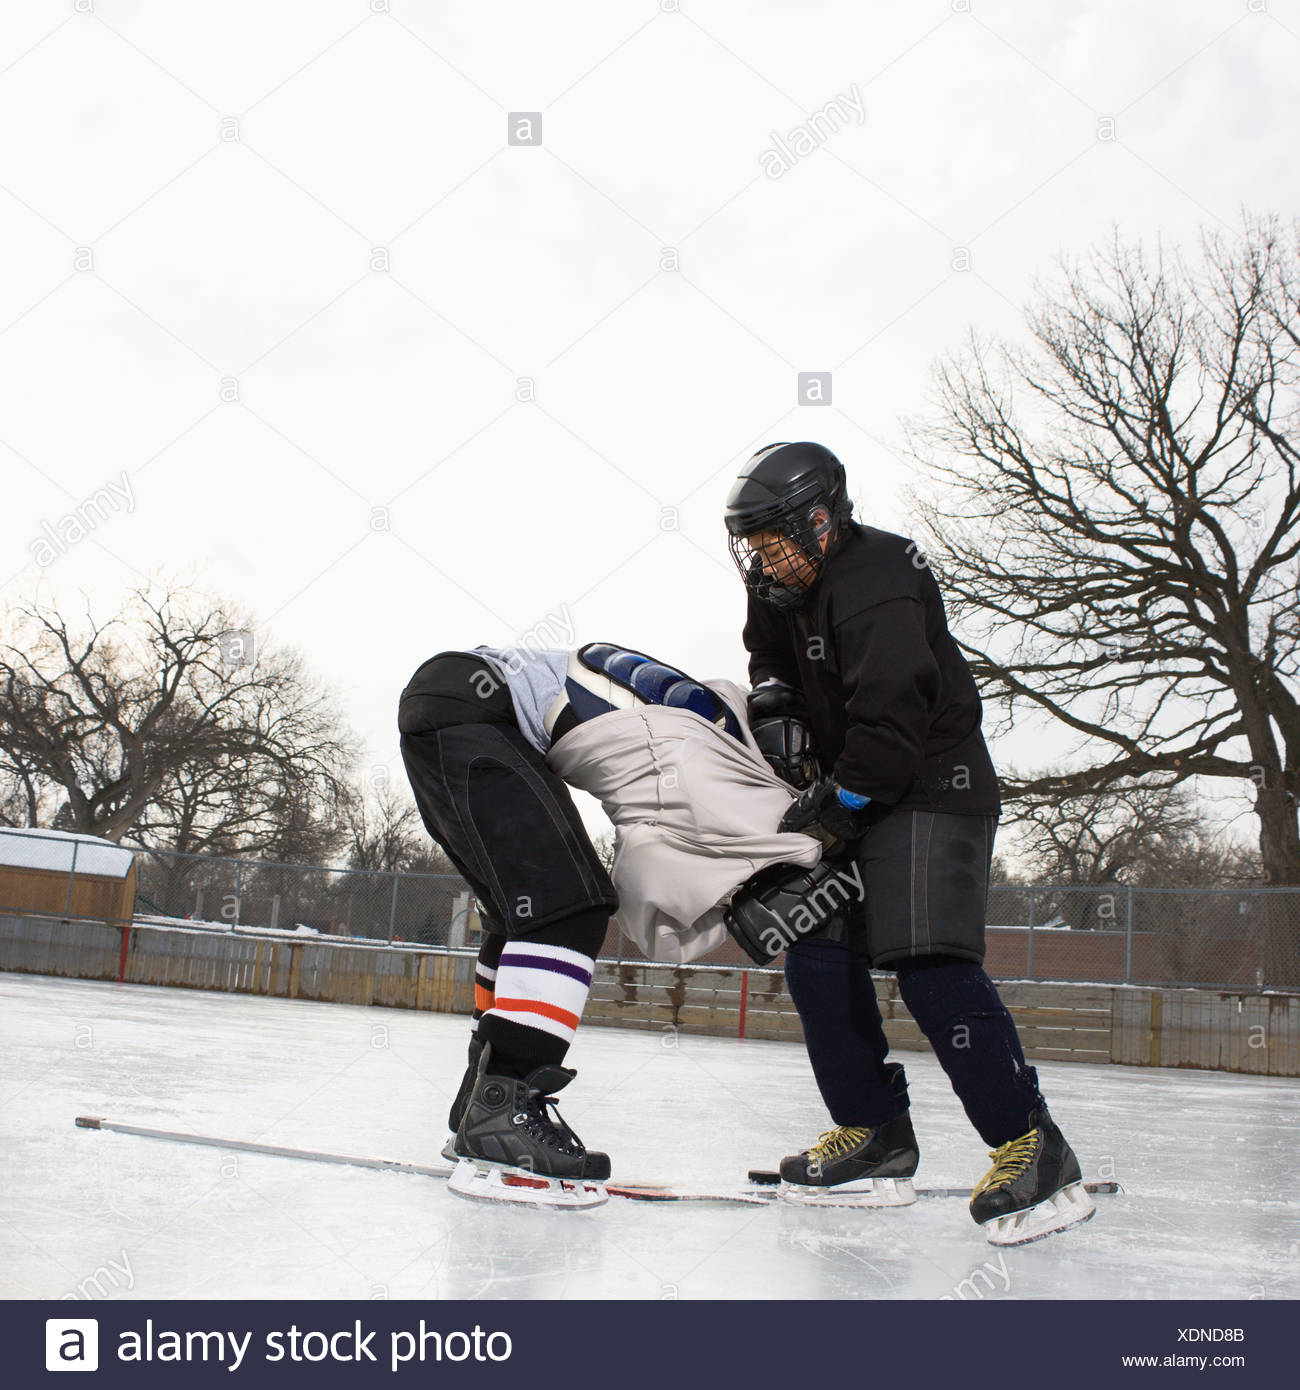 Ice hockey player boy roughing up another player on the ice rink - Stock Image